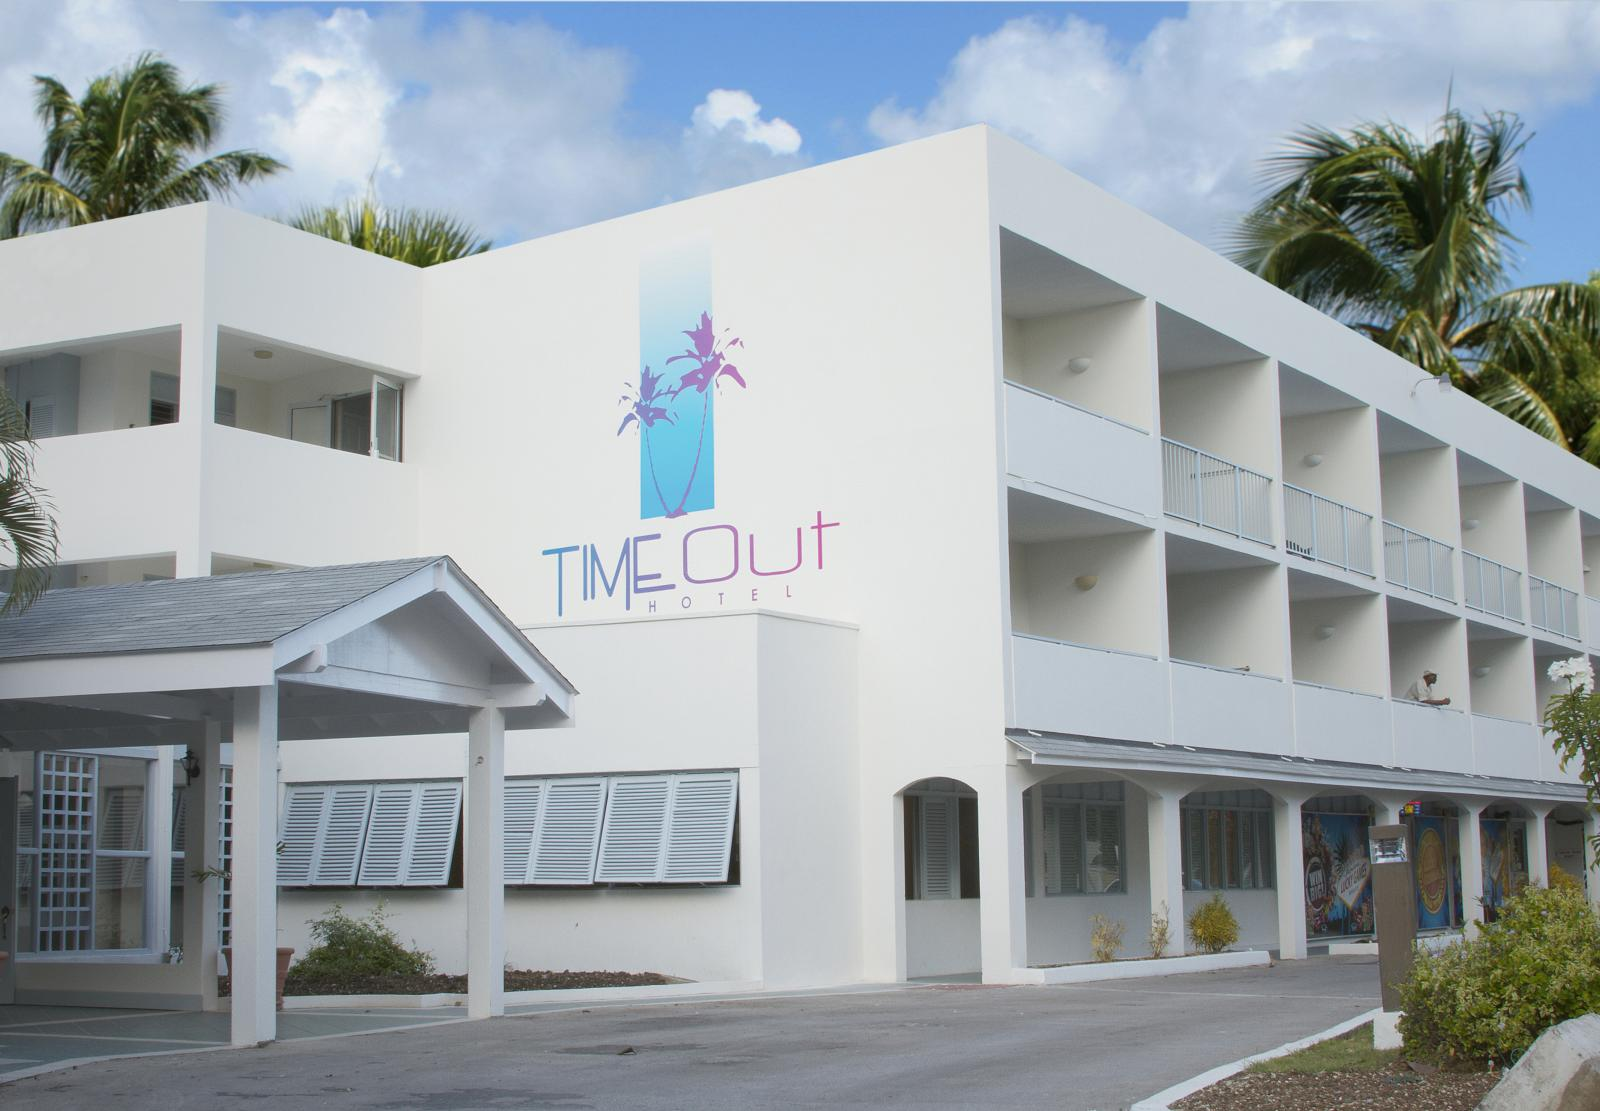 Time Out Hotel Exterior